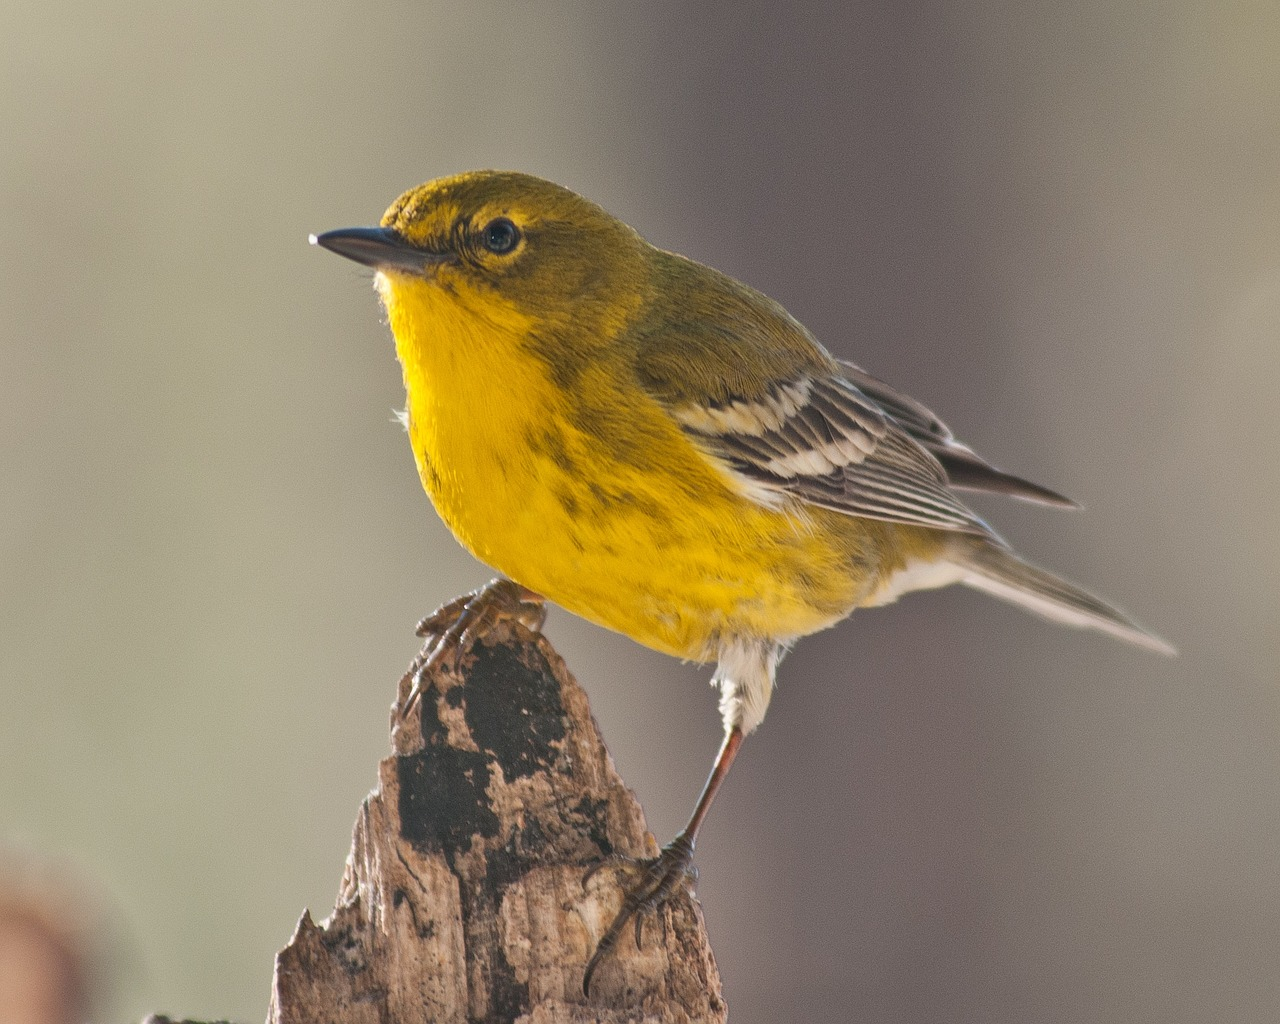 Yellow warbler bird perched on a piece of wood.